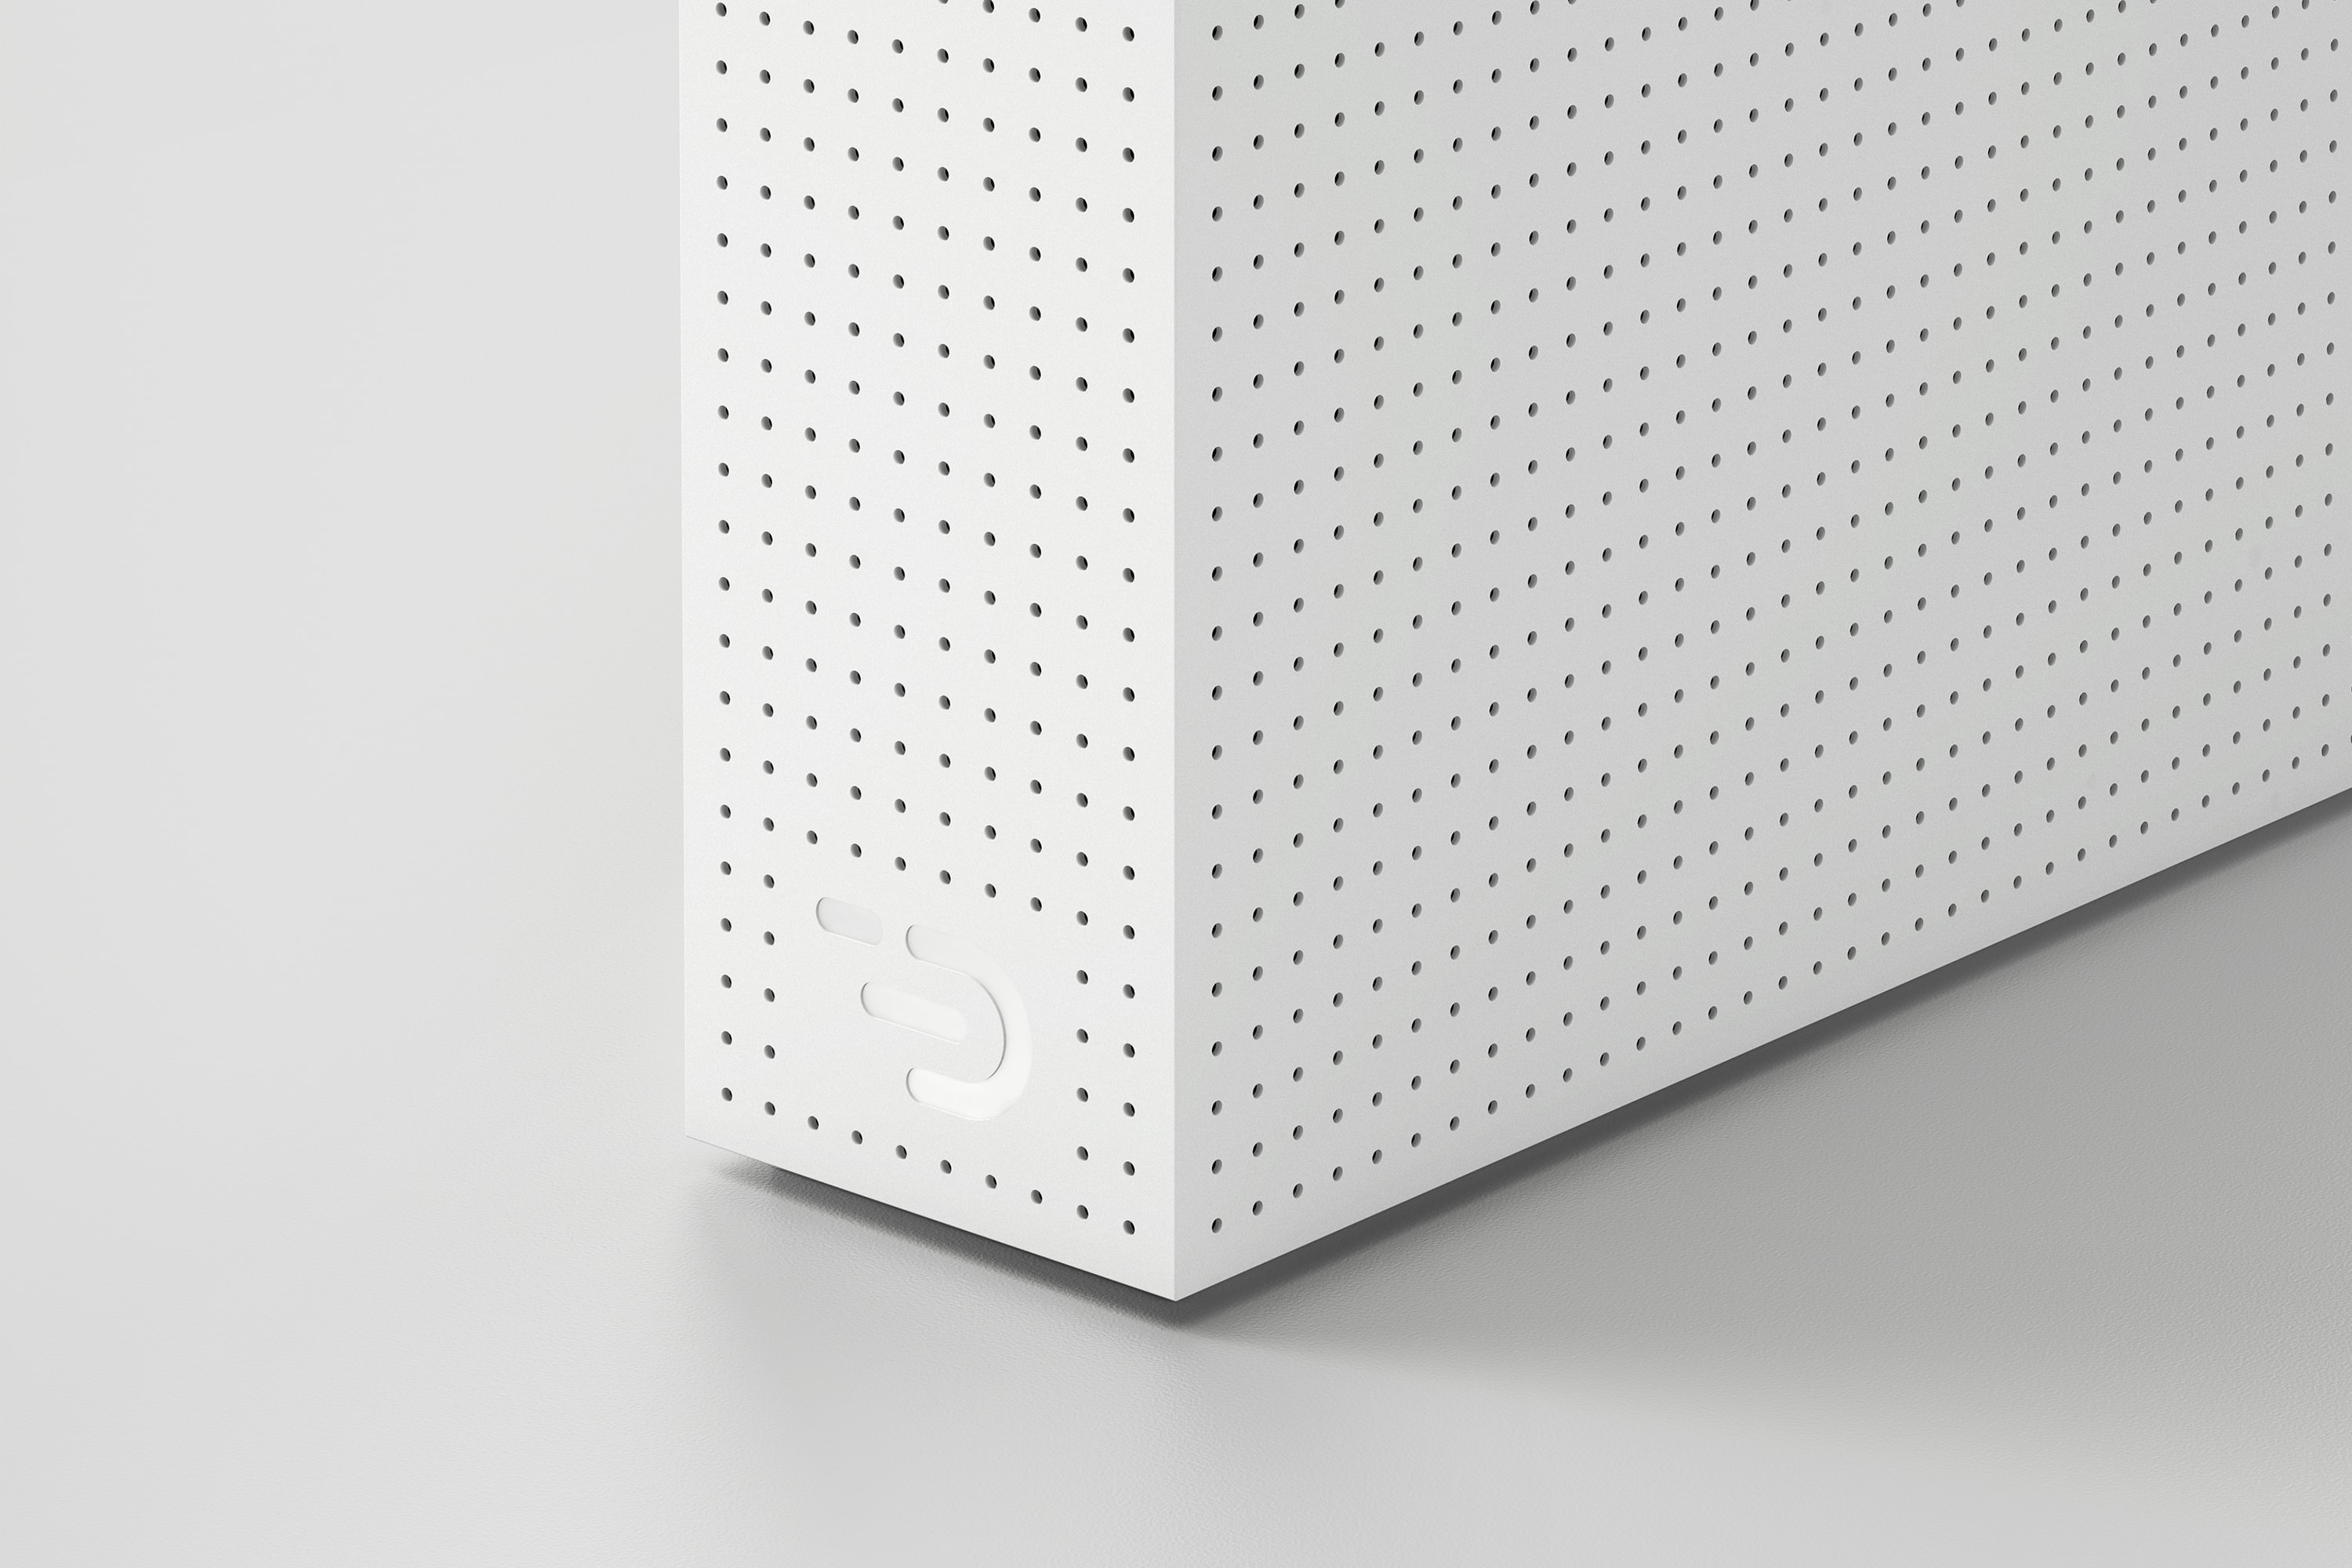 Perspective view of part of the Node one in white. The casing is perforated with small holes for venting and shows the DADI logo.